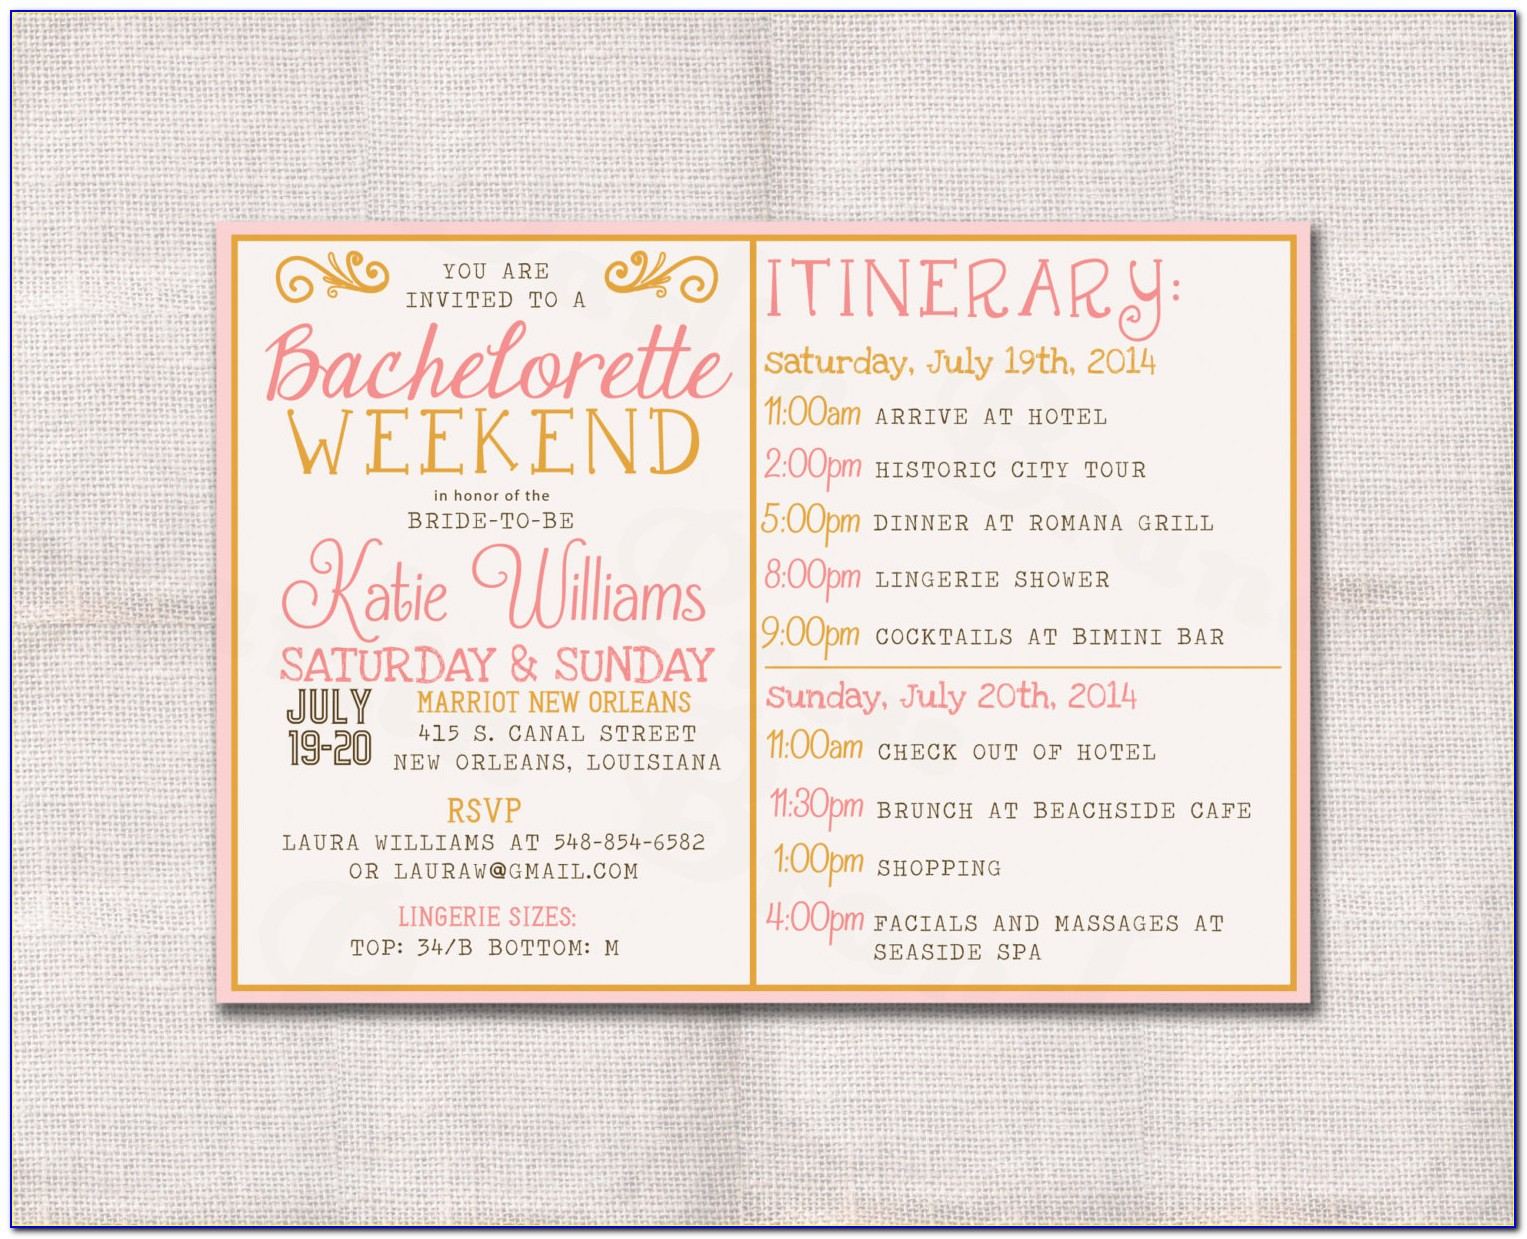 Bachelorette Party Itinerary Template Free Download